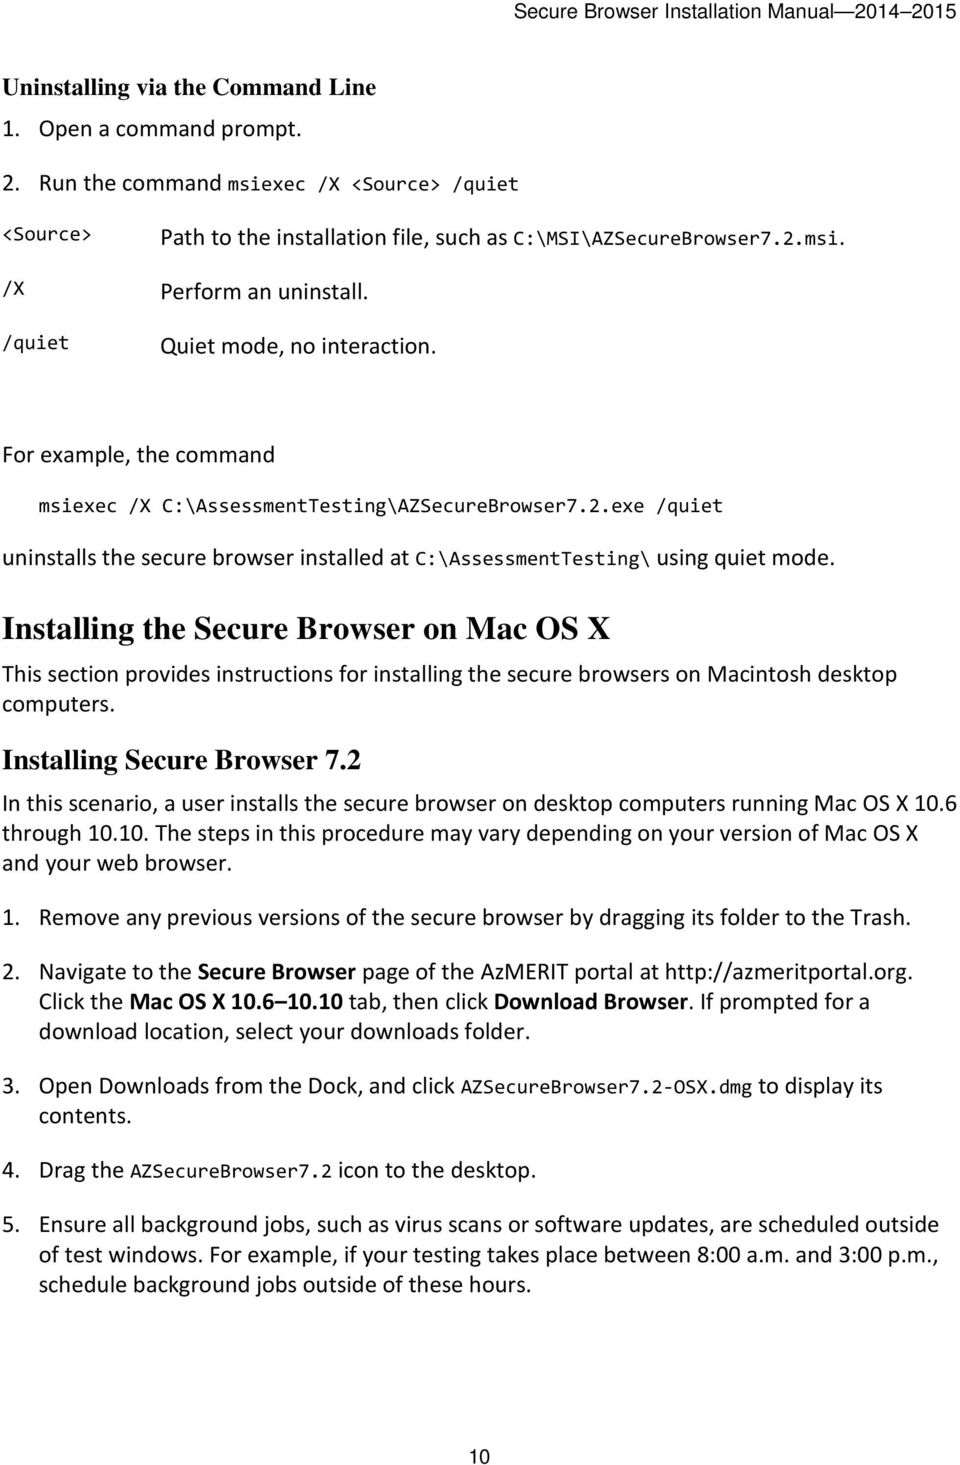 exe /quiet uninstalls the secure browser installed at C:\AssessmentTesting\ using quiet mode.